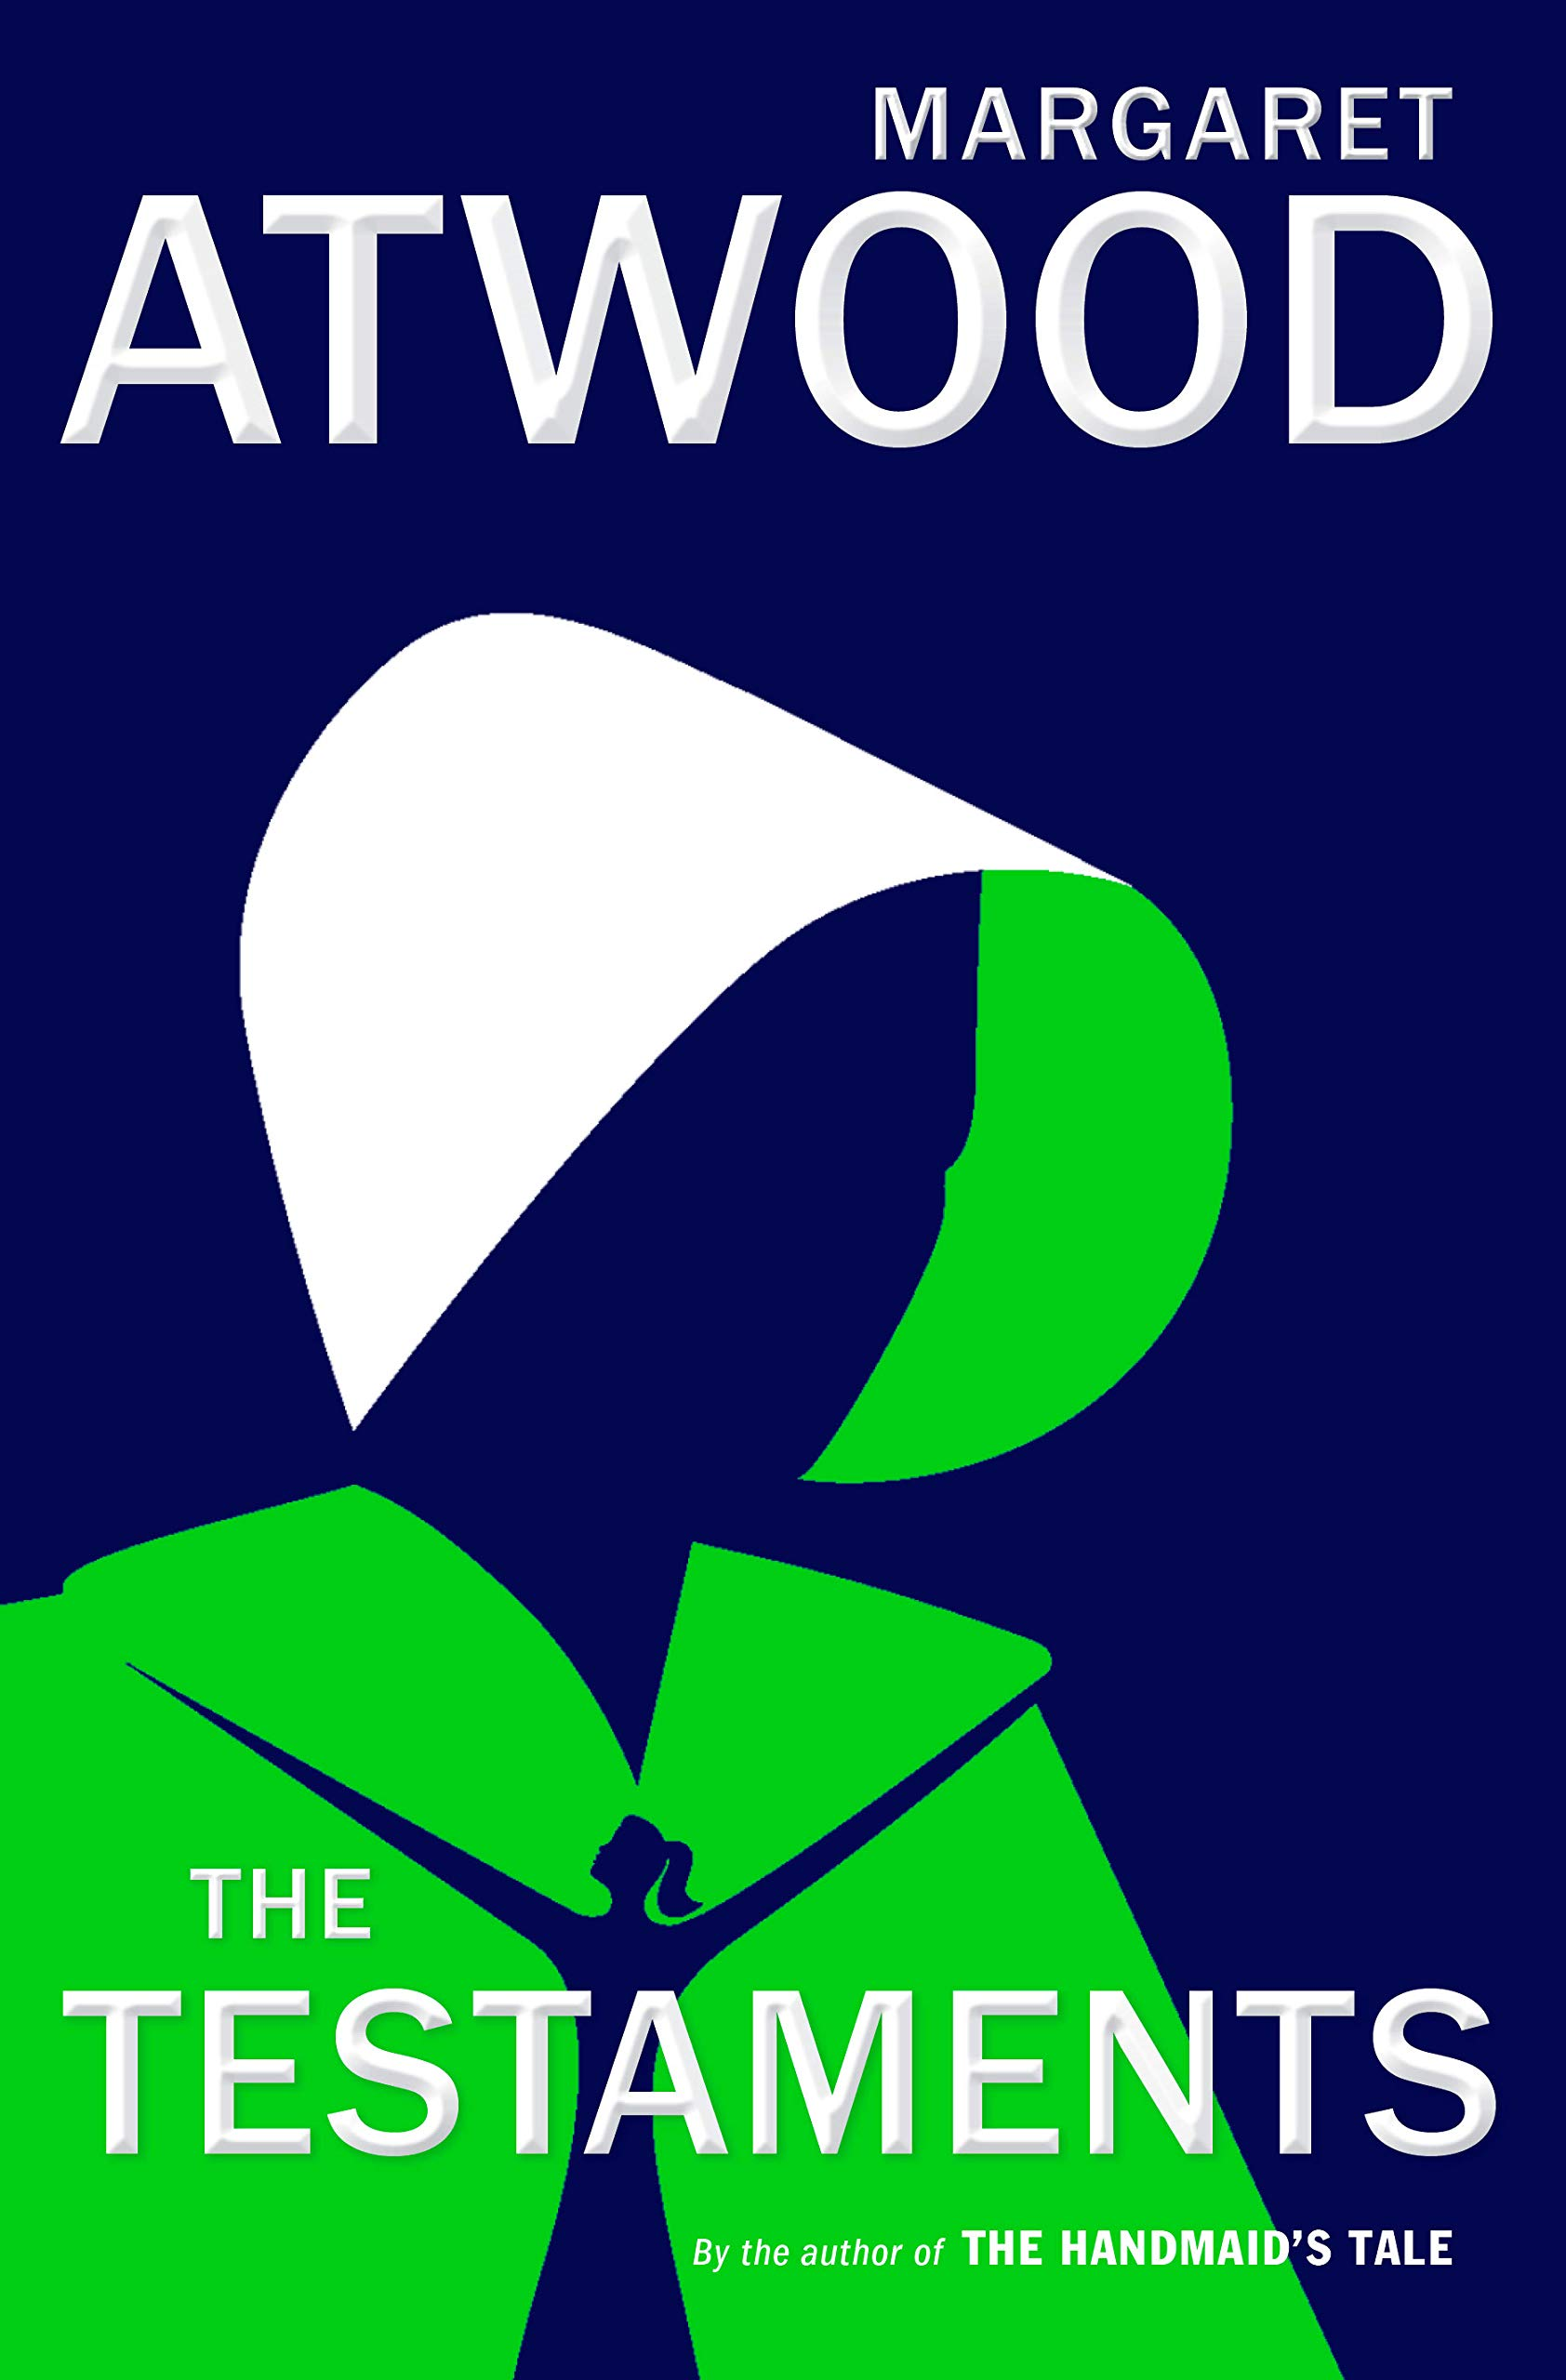 When the van door slammed on Offred's future at the end of  The Handmaid's Tale , readers had no way of telling what lay ahead for her—freedom, prison or death. With  The Testaments , the wait is over. Margaret Atwood's sequel picks up the story fifteen years after Offred stepped into the unknown, with the explosive testaments of three female narrators from Gilead.